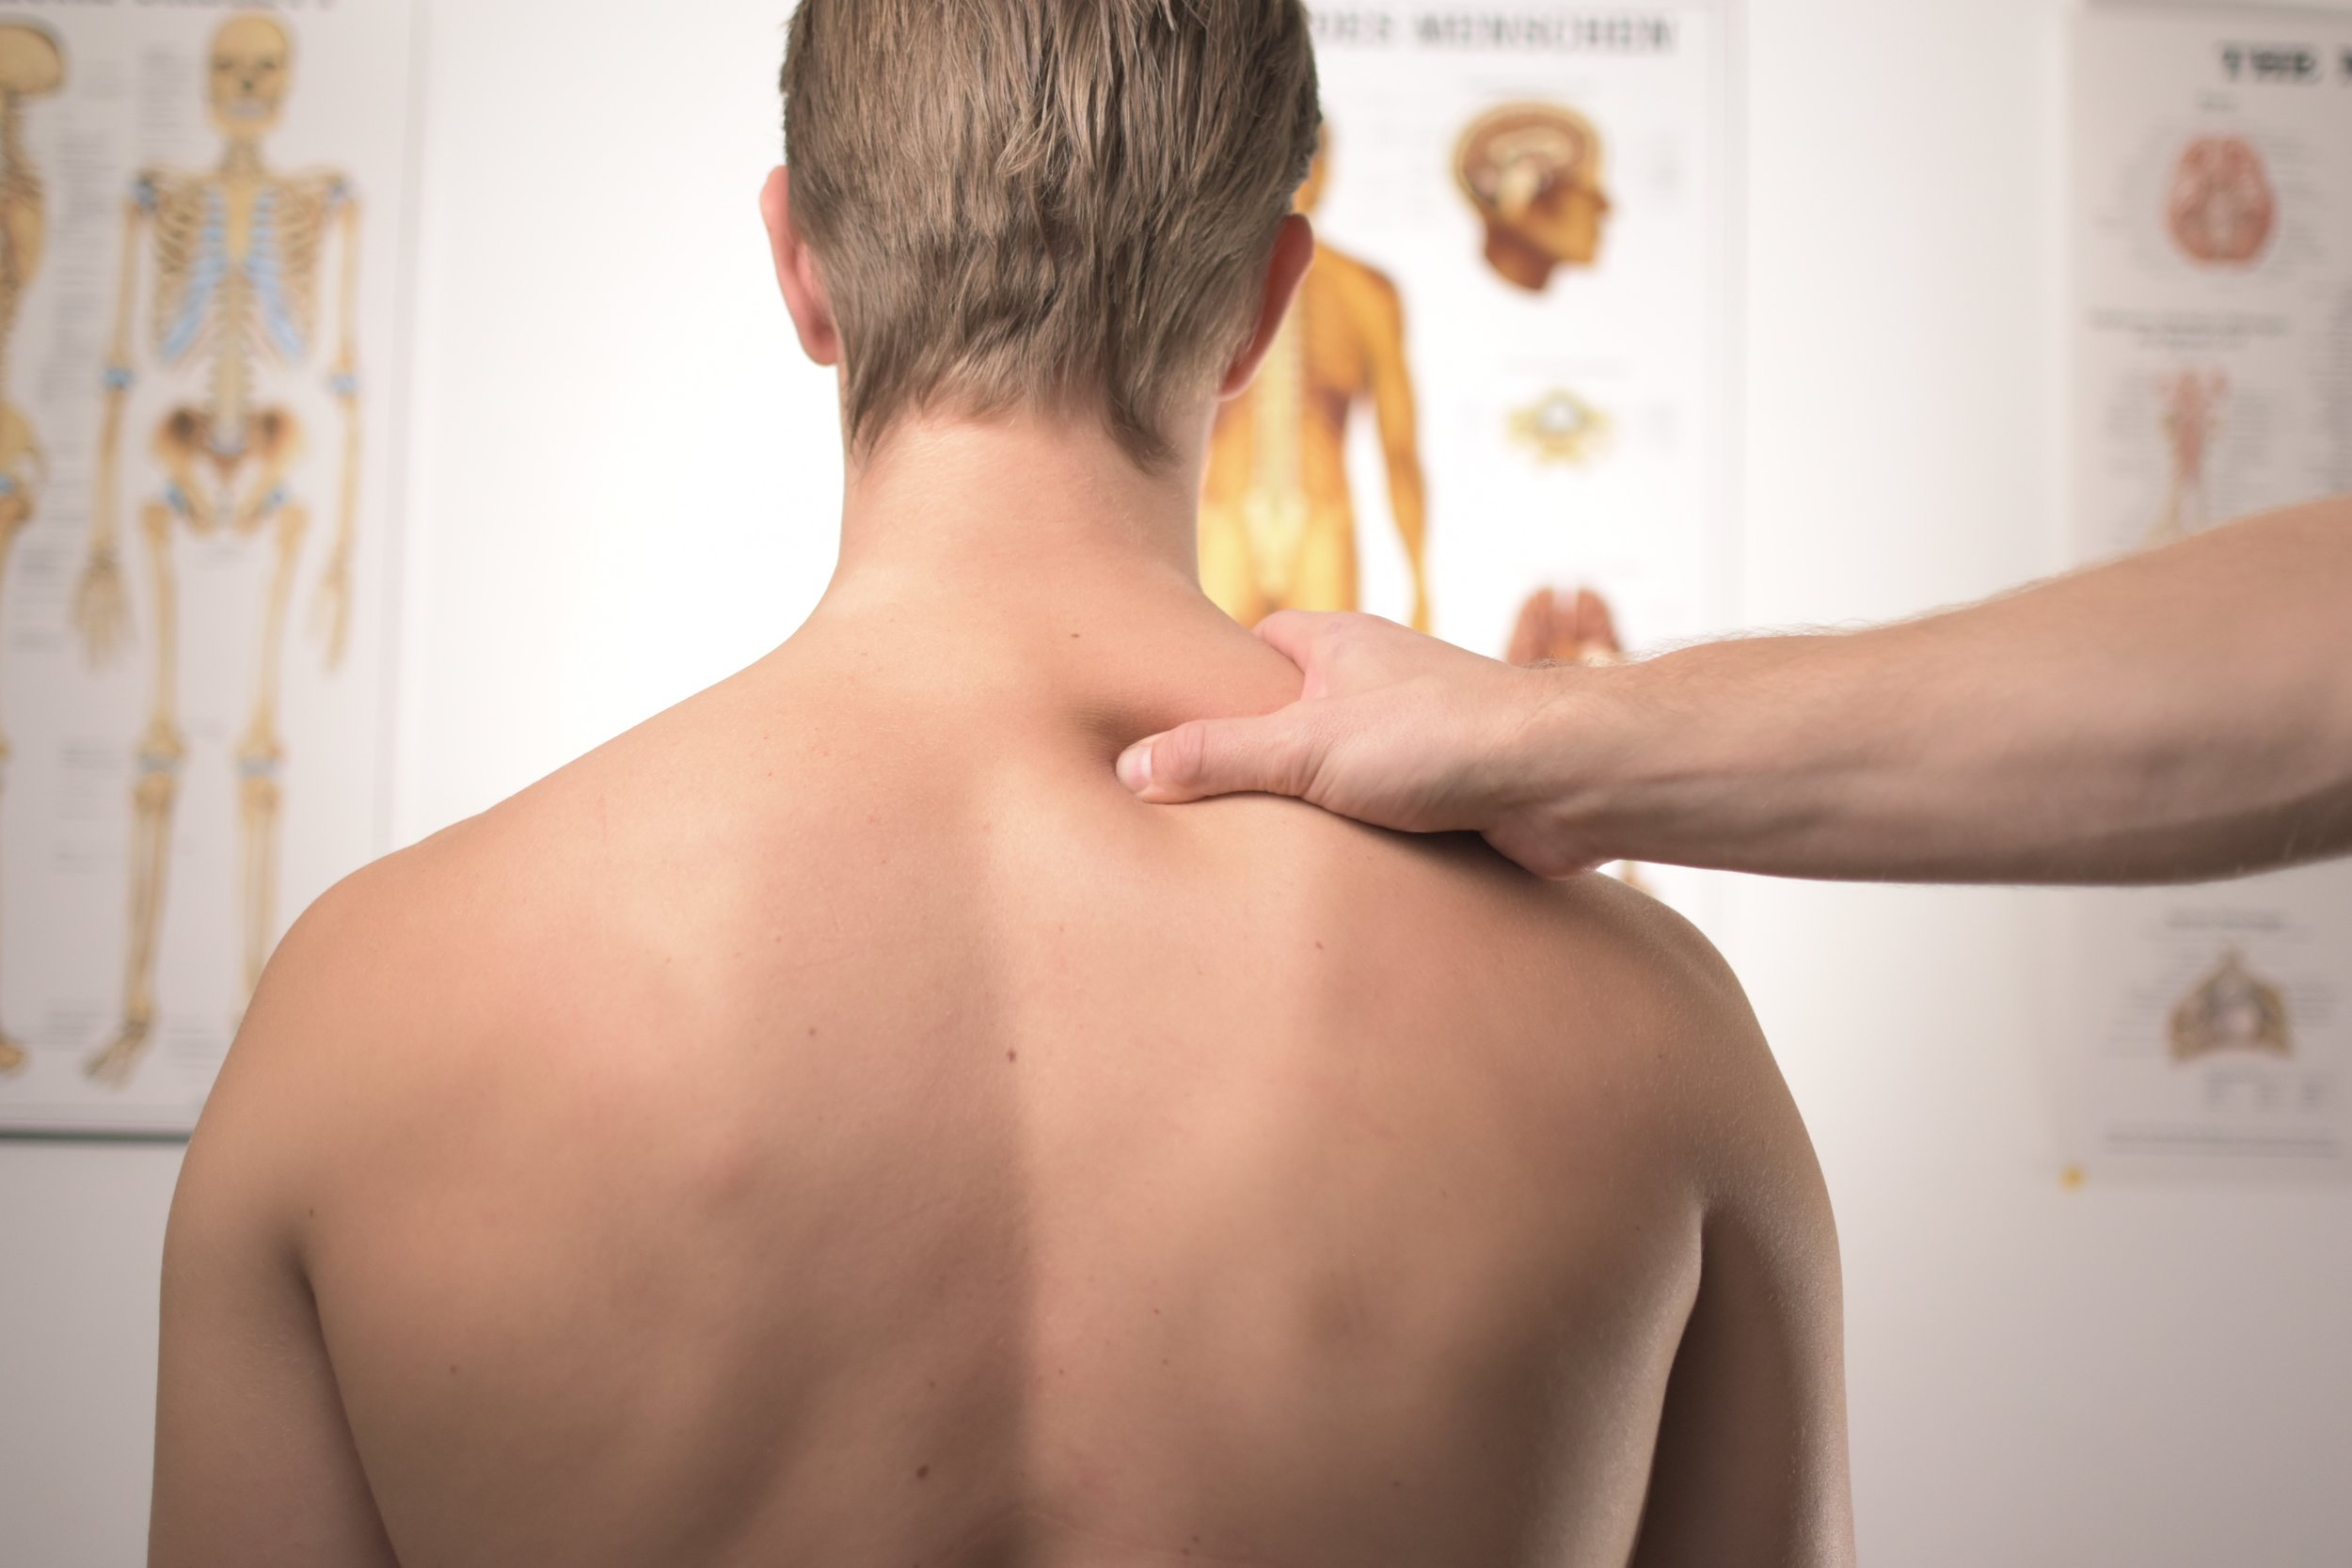 PHYSICAL MEDICINE involves hands-on techniques such as massage, stretching, and other therapies to address musculoskeletal conditions.